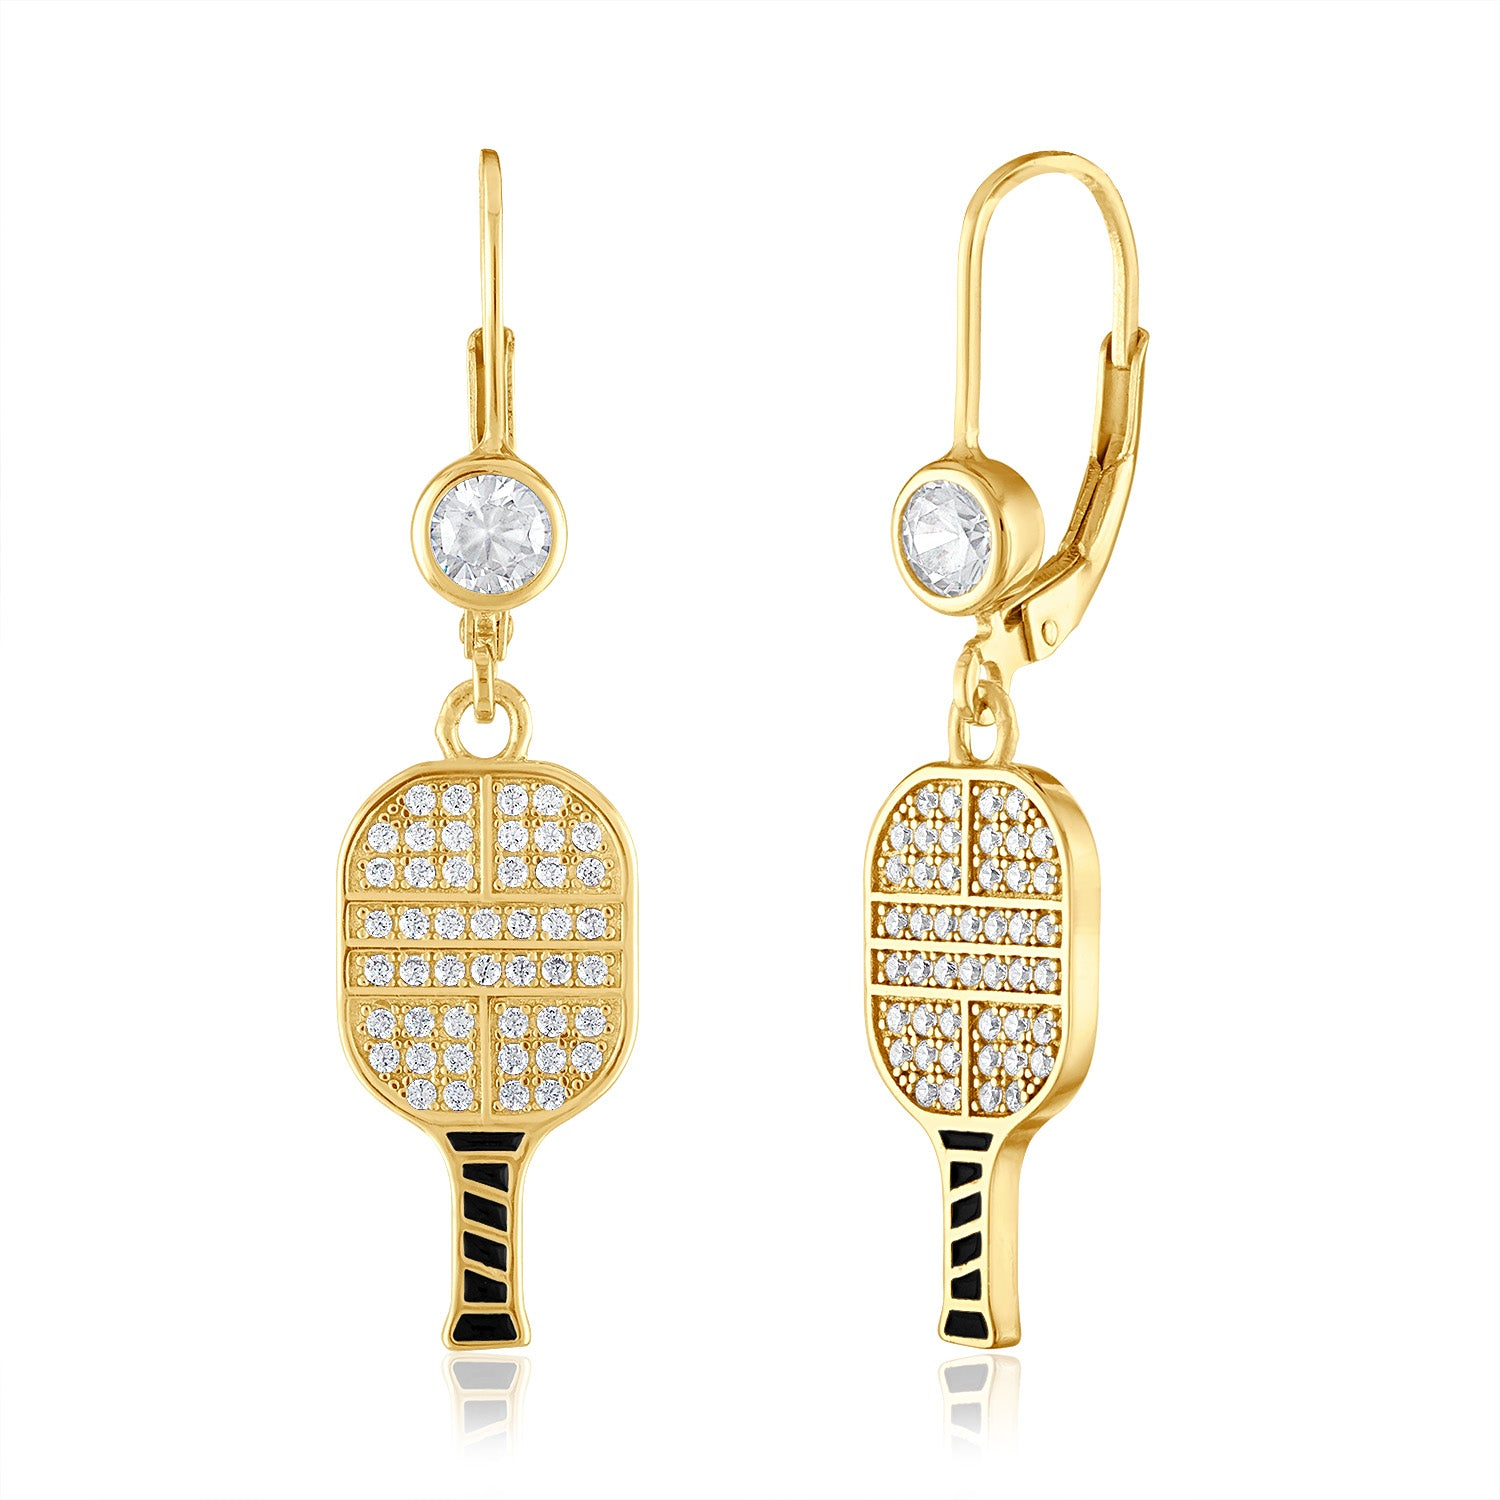 CZ Pickle Paddle Lever Back Earrings